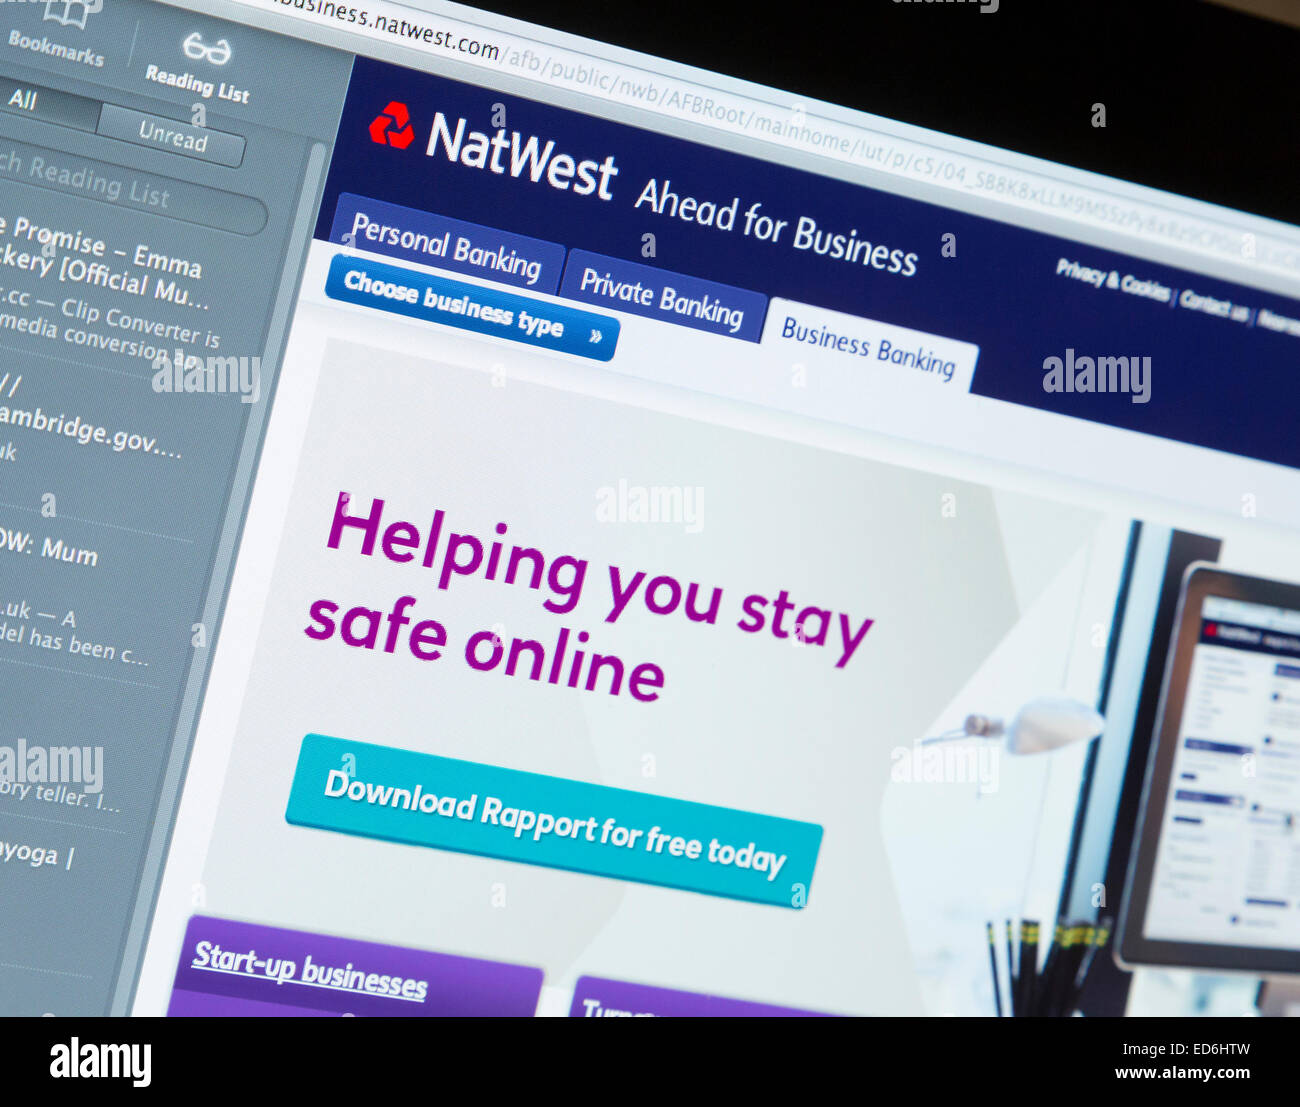 NatWest bank website page - Stock Image